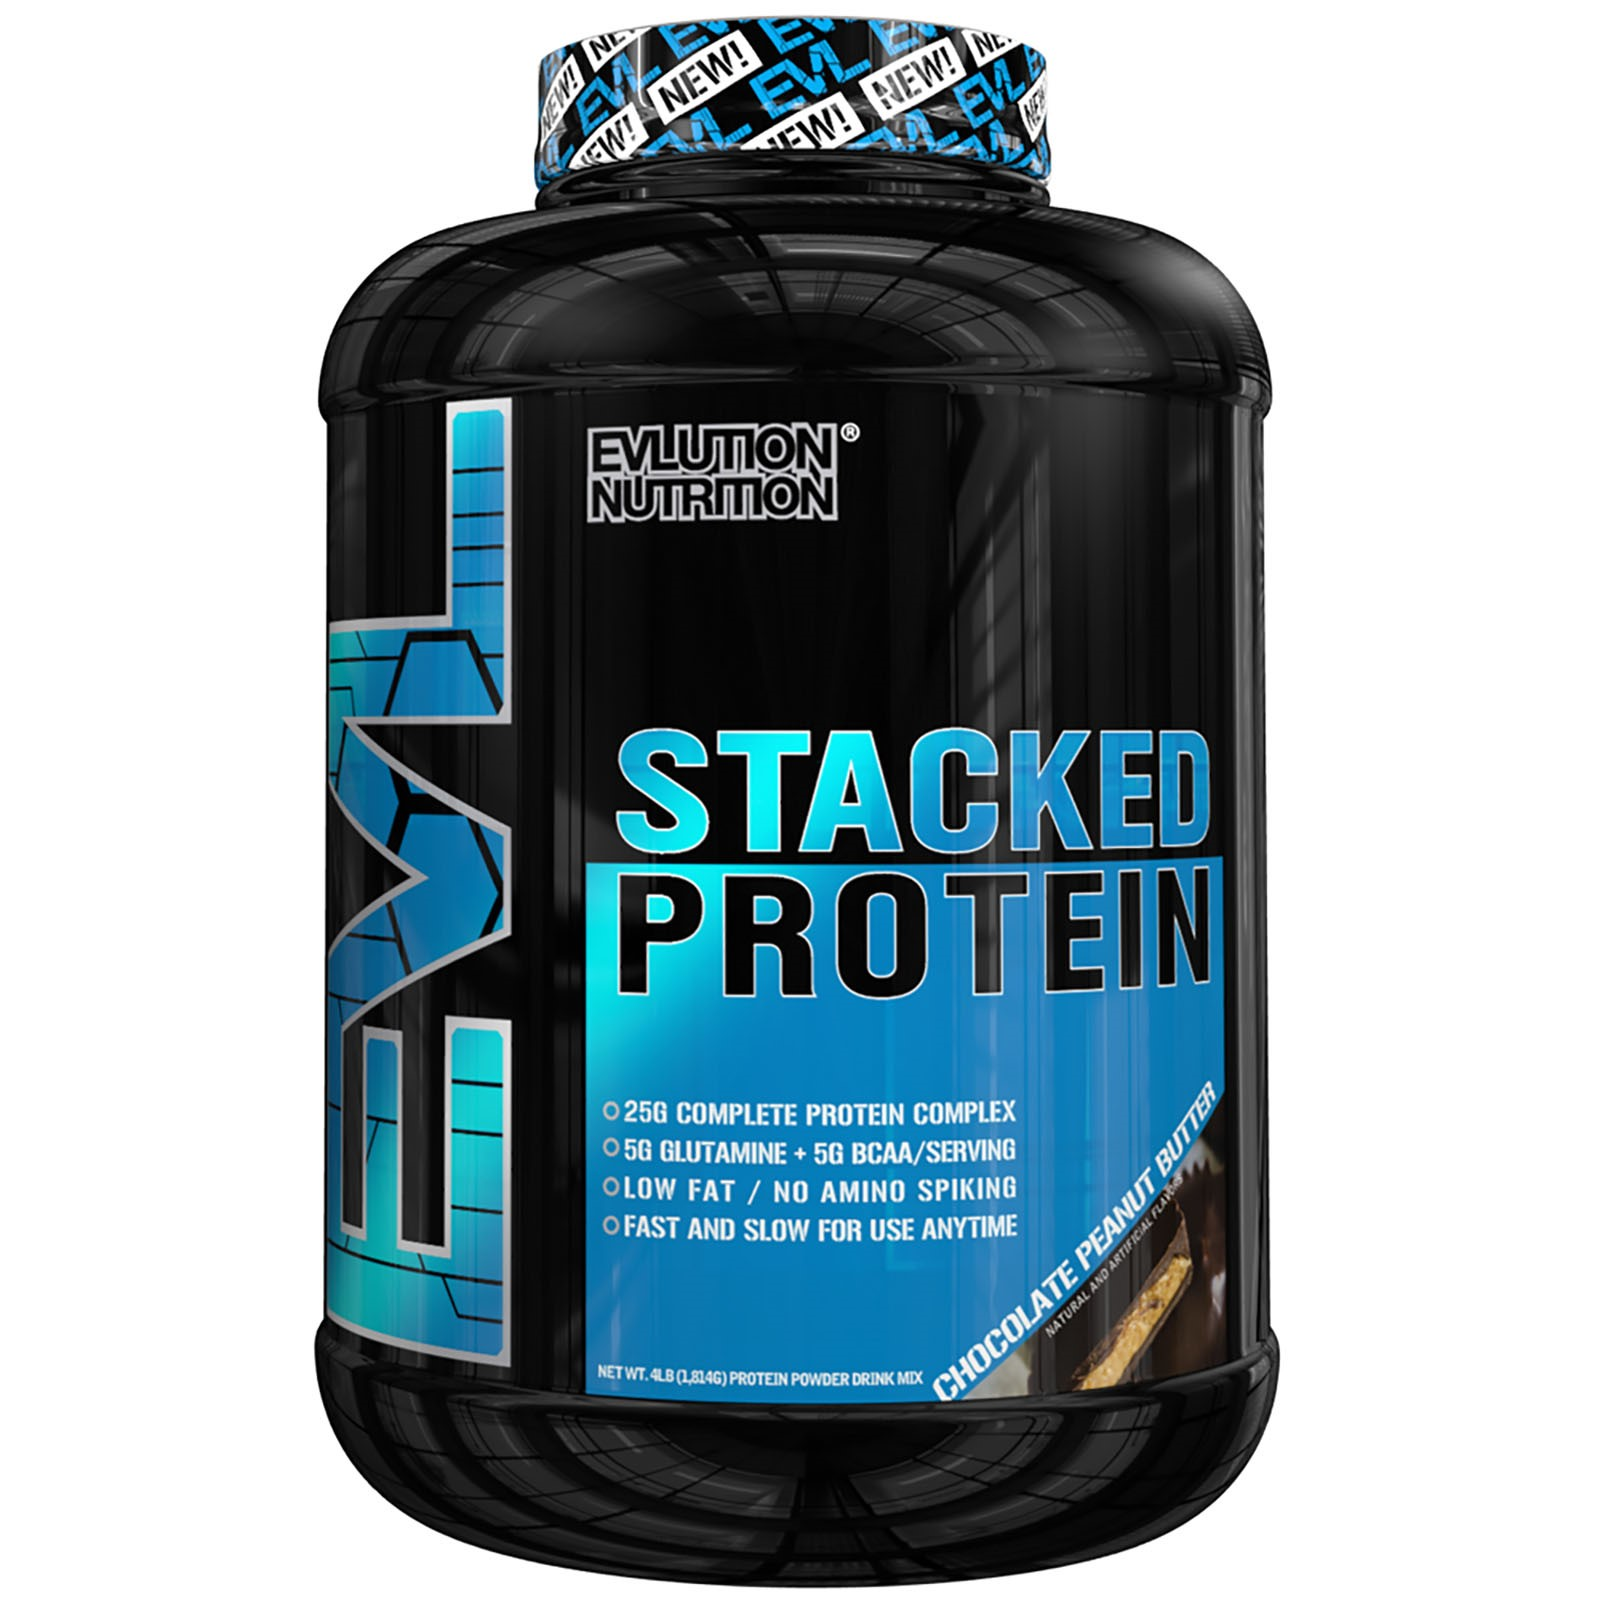 Evlution Nutrition Stacked Protein Powder, Chocolate Peanut Butter, 4 Lb